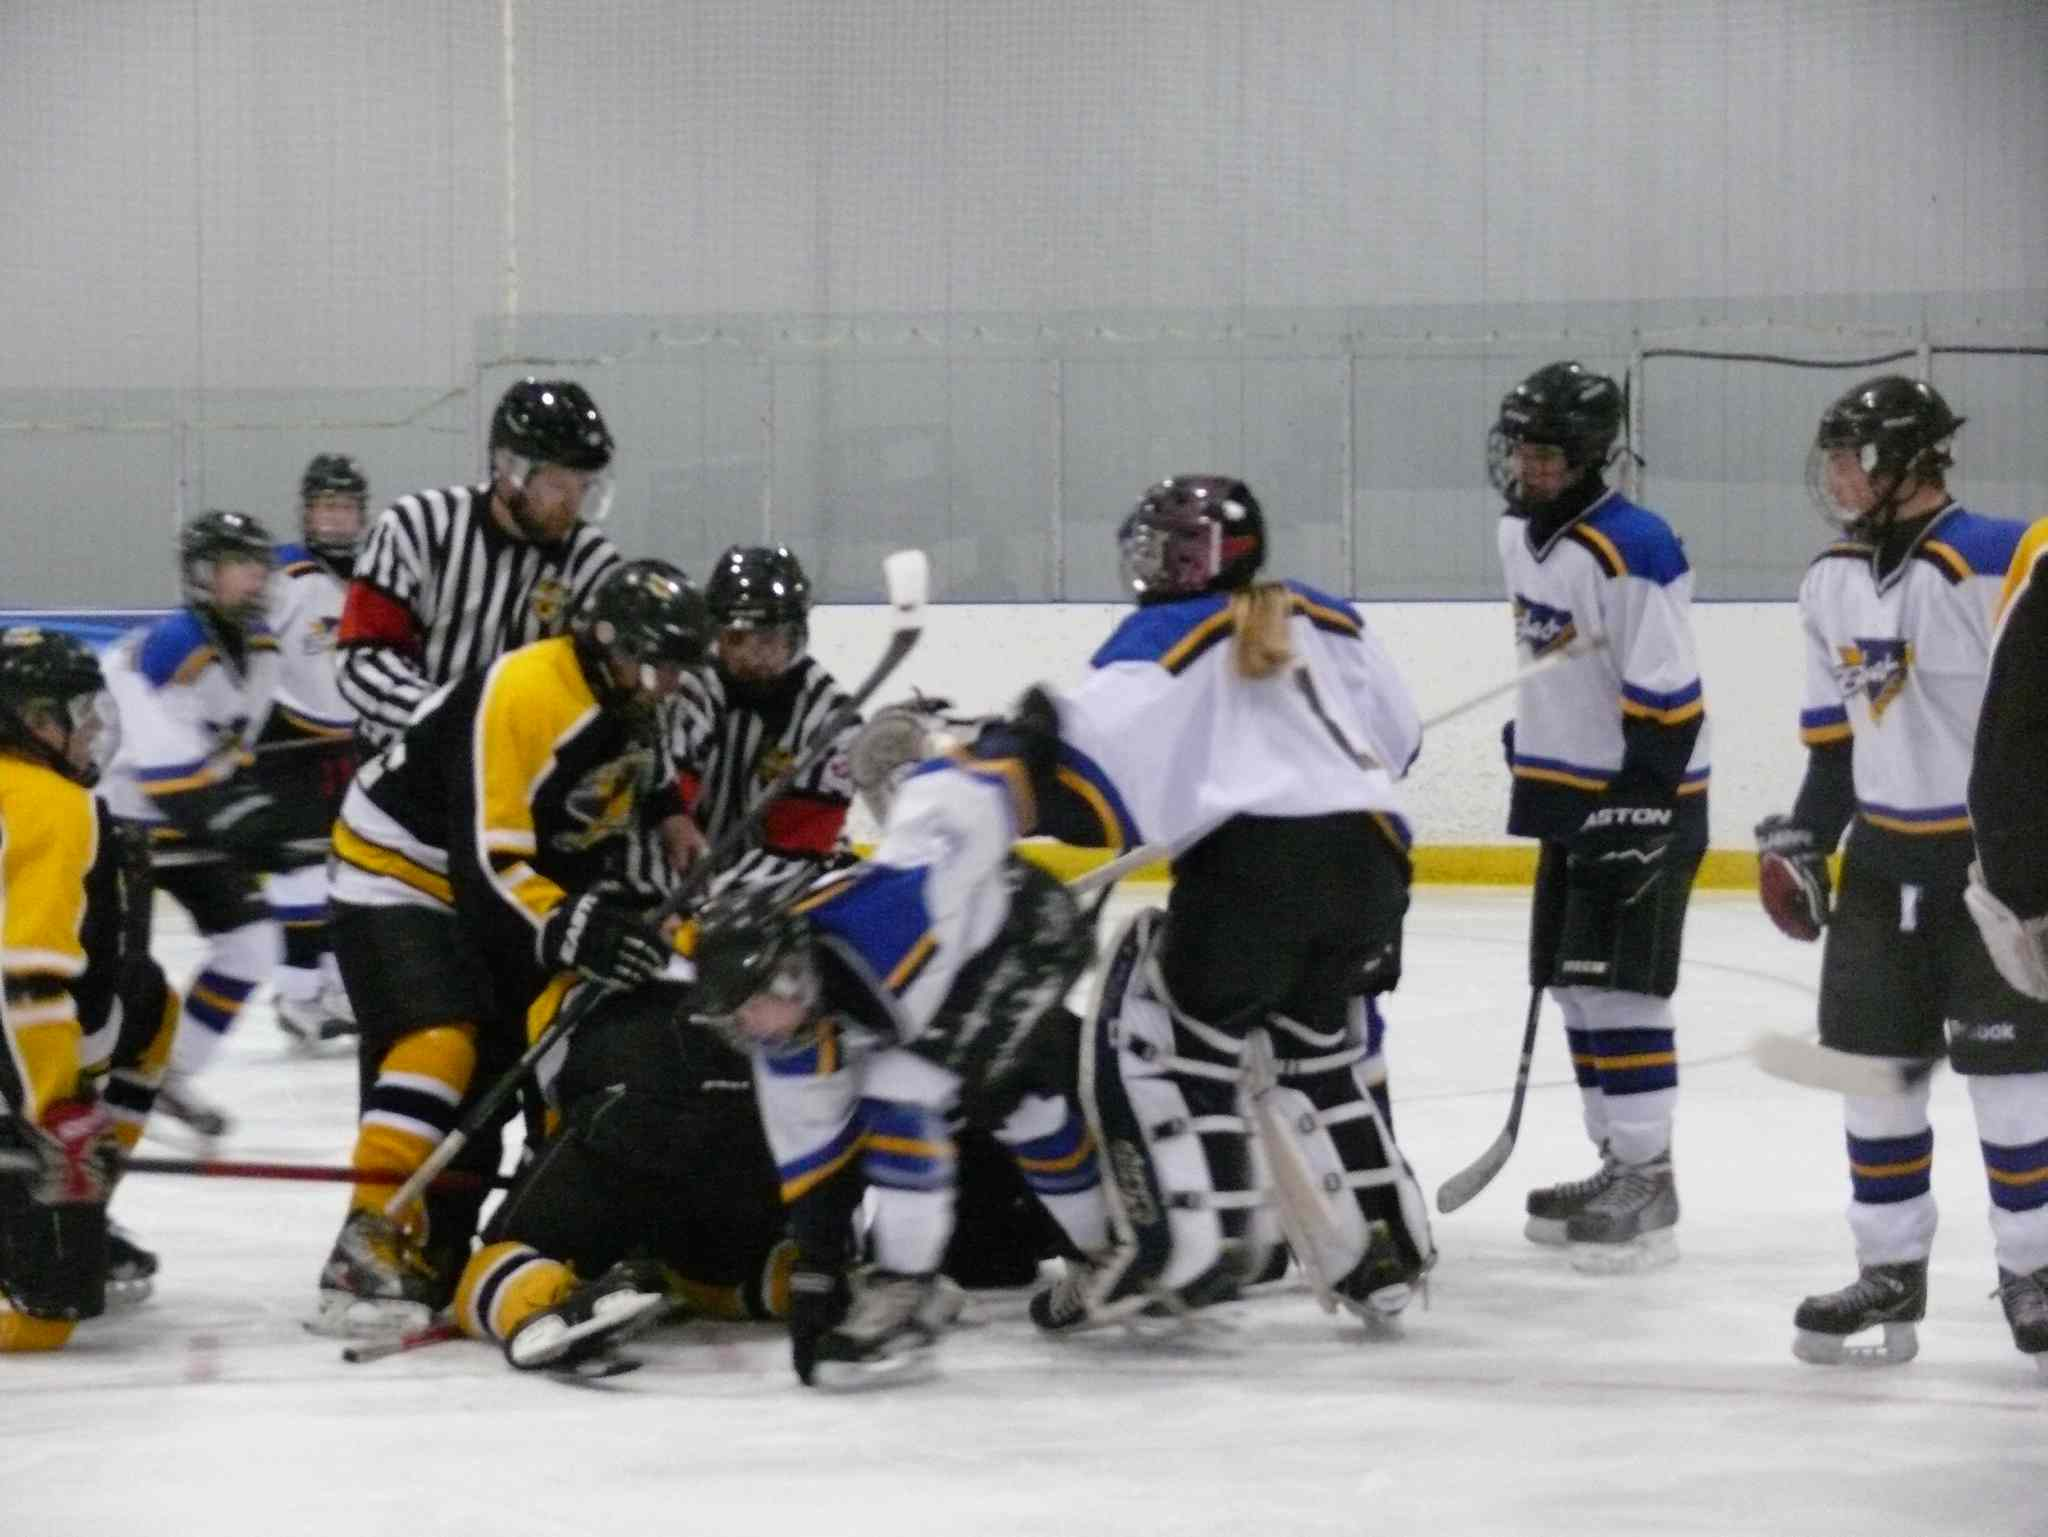 Two teens were charged with assault during this on-ice incident during a game in Stonewall on March 30.